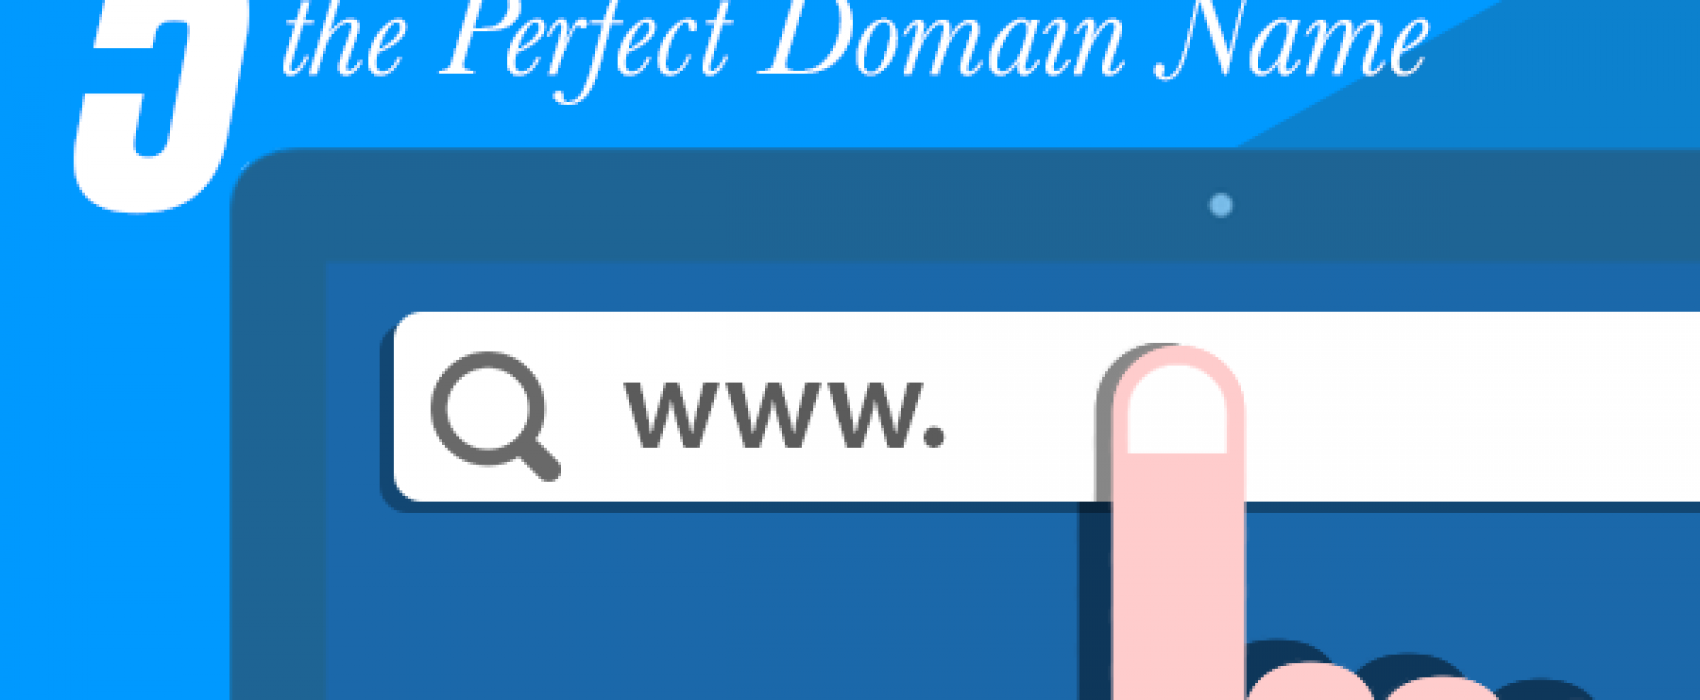 http://www.besthosting-tips.com/cheap-domain-registration-hosting/10-tips-before-you-buy-a-domain-name/ - One of the most important decisions in setting up an online presence is choosing a domain name.